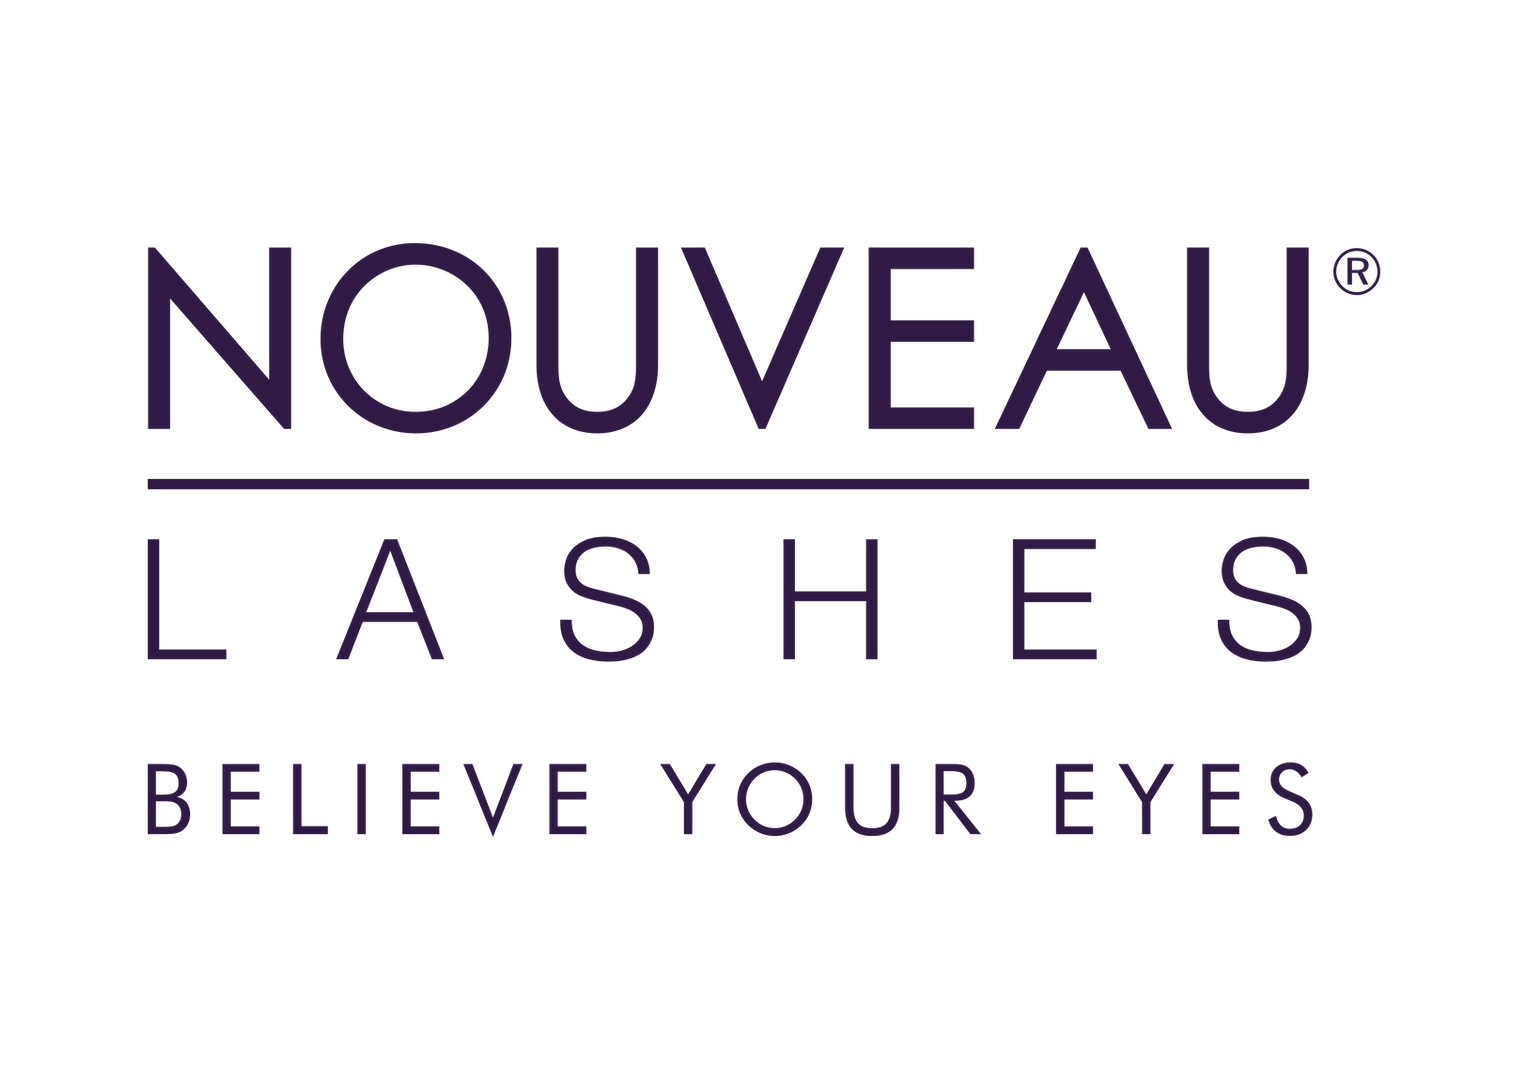 Nouveau Lashes Believe Your Eyes (purple